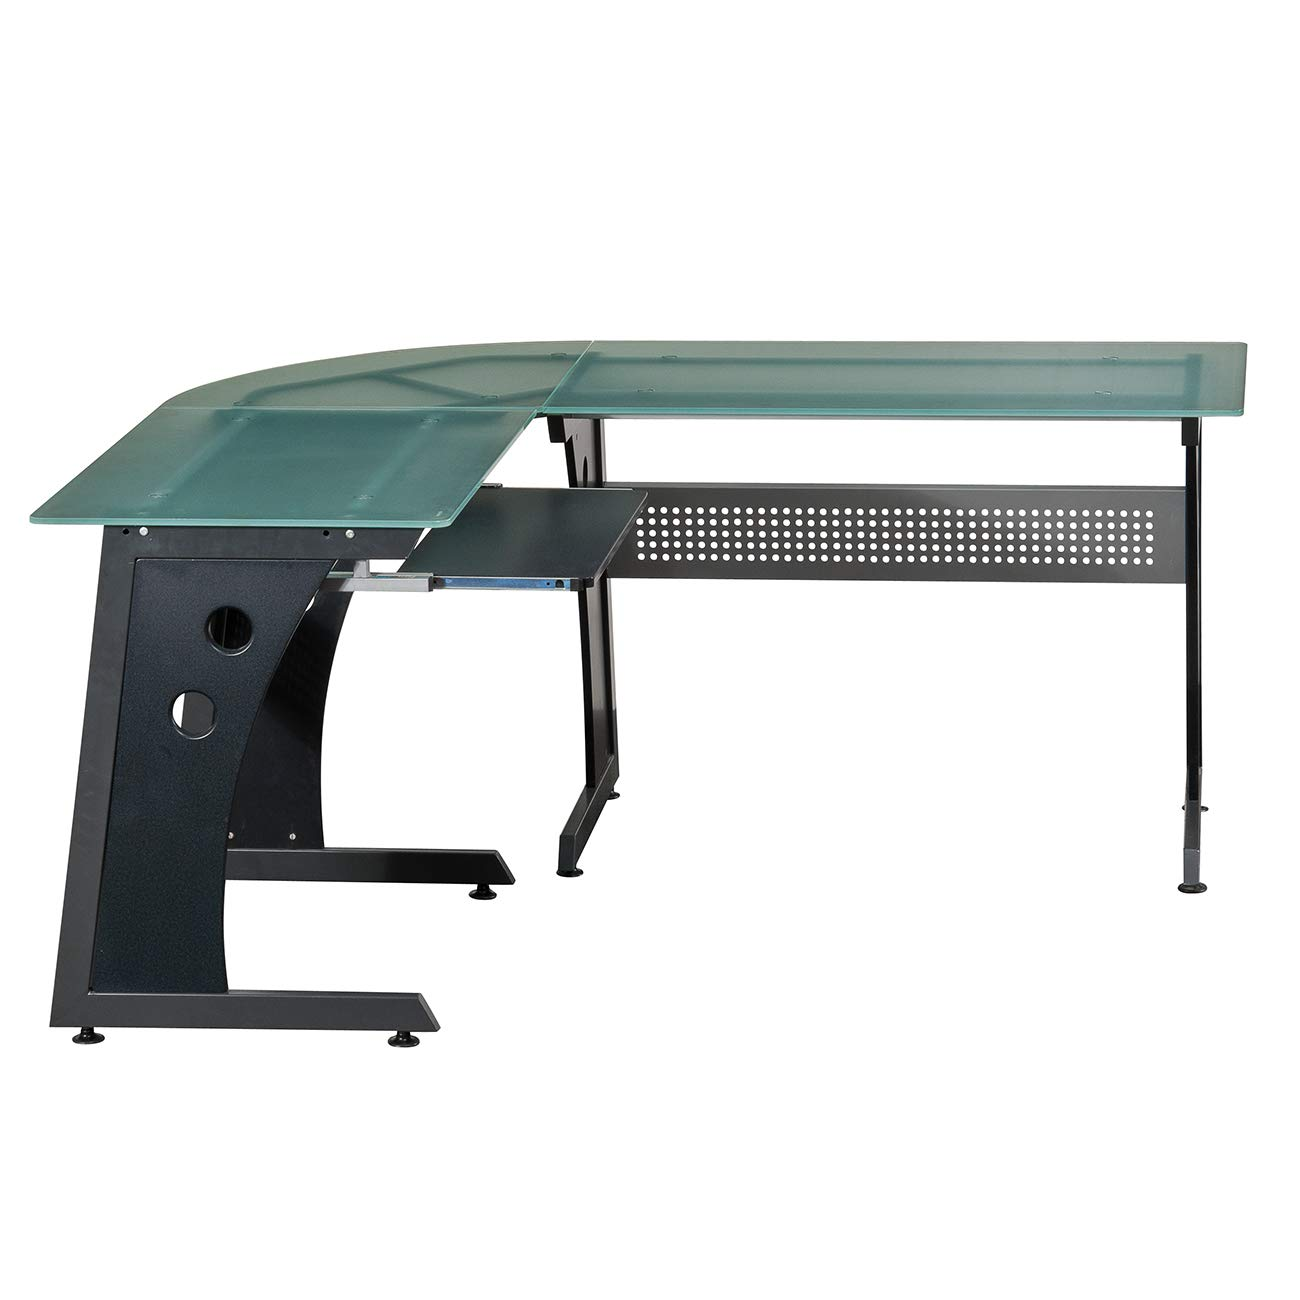 Techni Mobili Deluxe Tempered Frosted Glass L Shaped Corner Desk With Pull Out Keyboard, Graphite